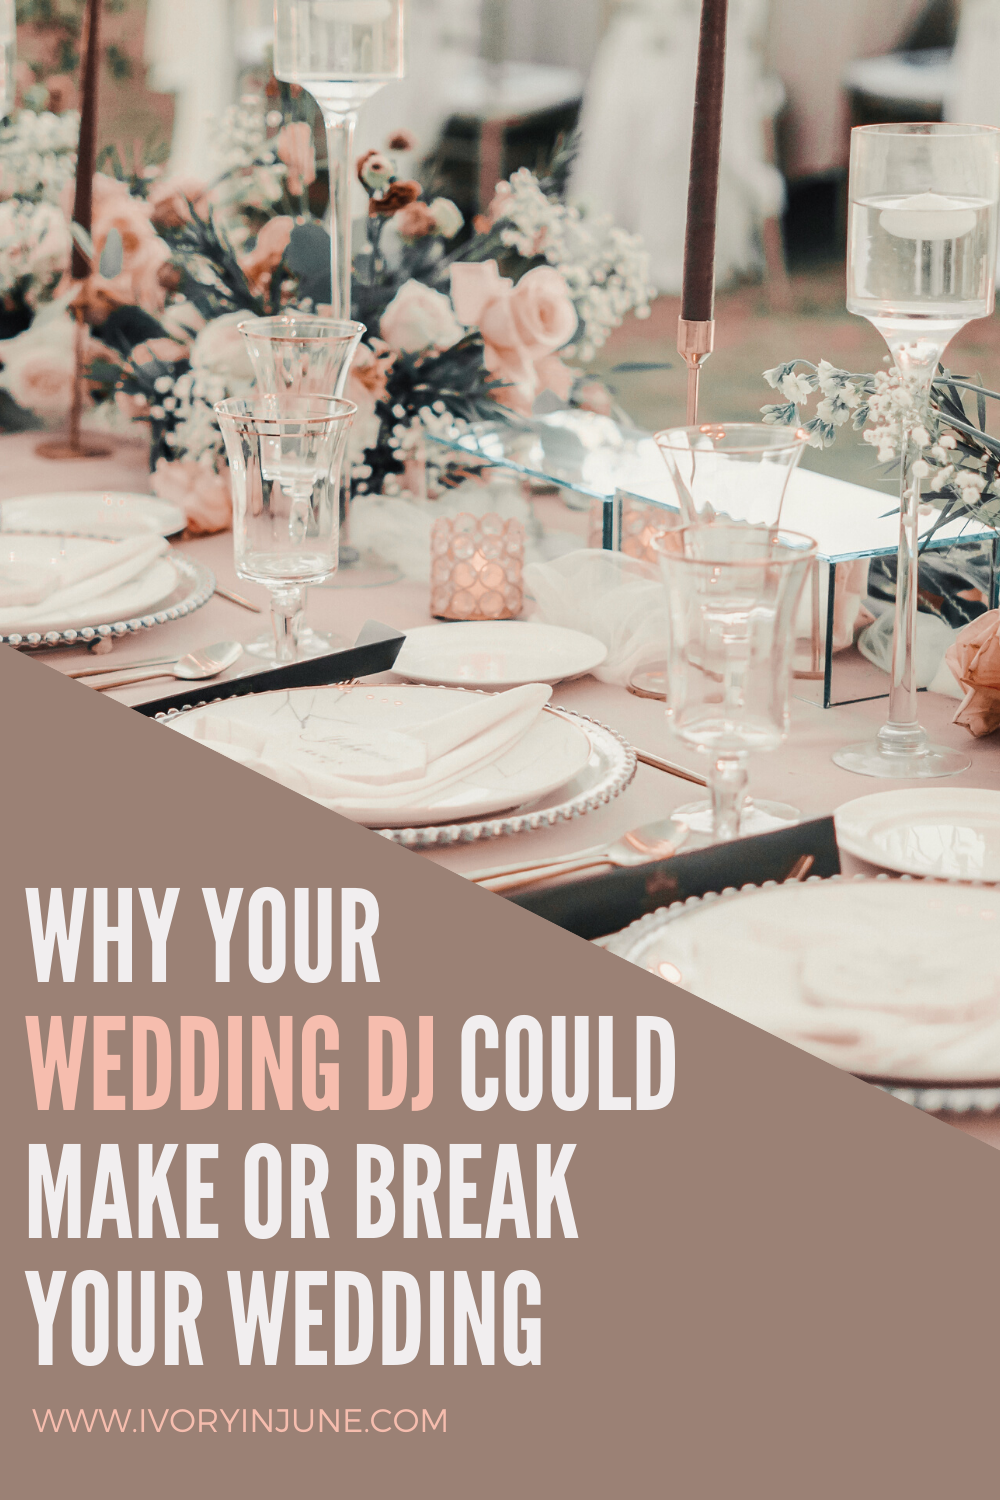 Ever think having a wedding DJ isn't that big of a deal? Well here's why they might be the most important decision you make.  #weddingdj #weddingplanning